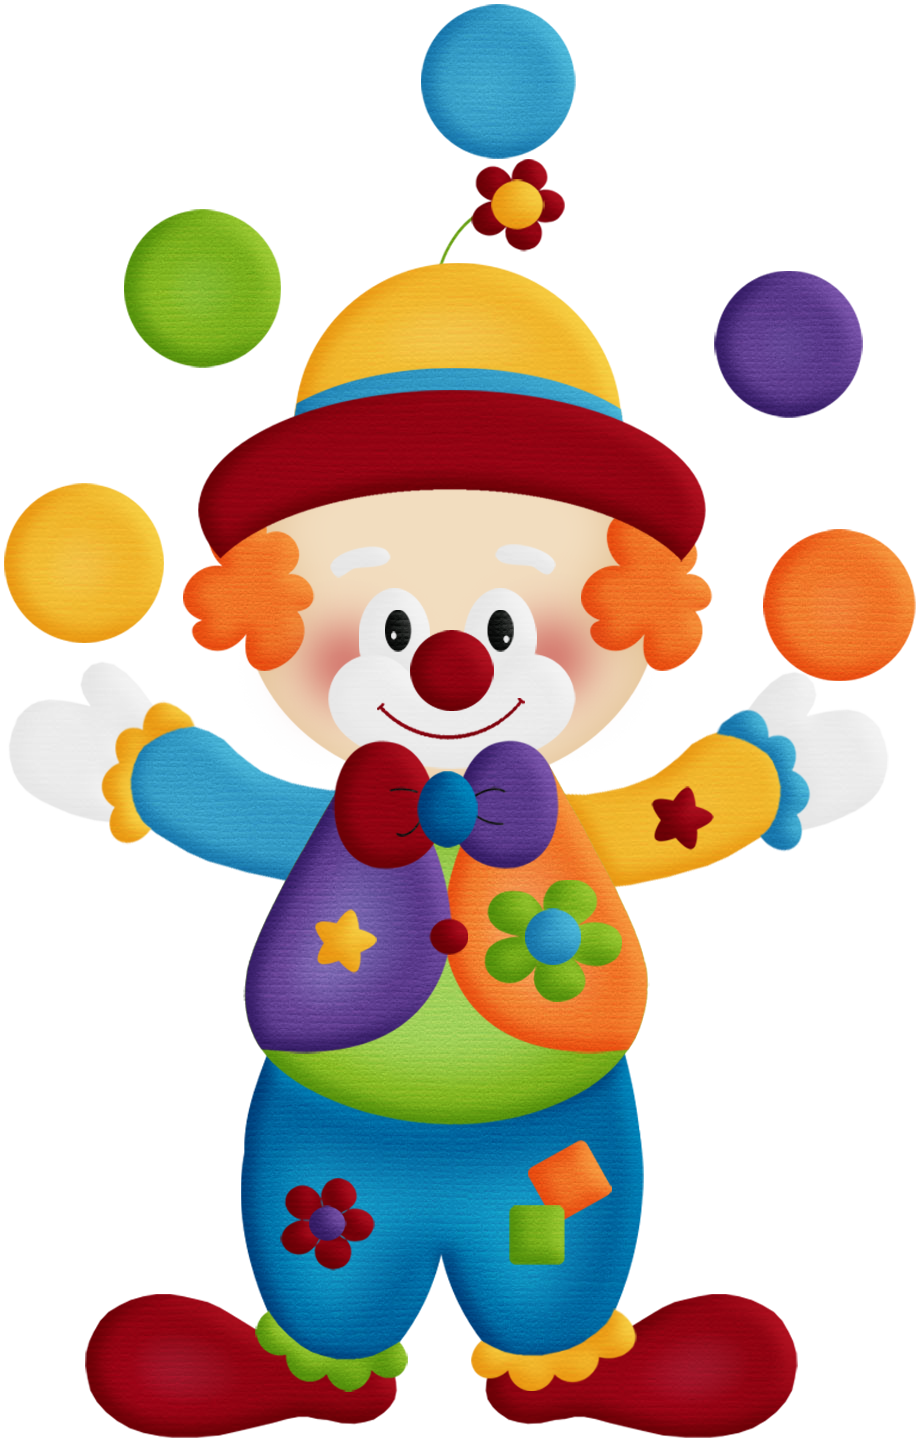 Circo png pesquisa google. Clown clipart carnival